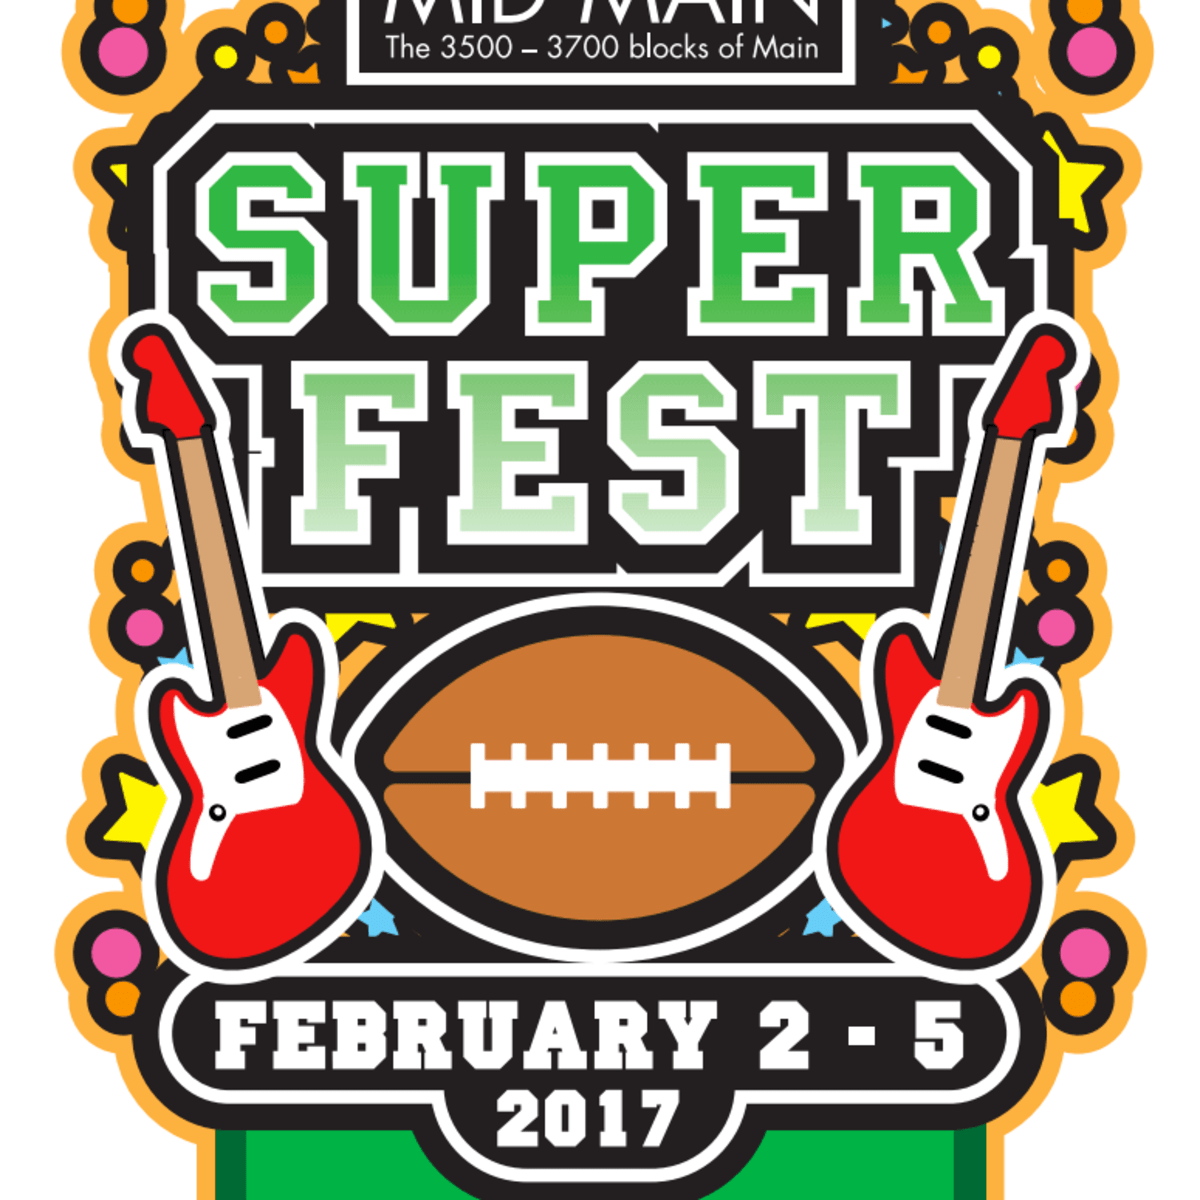 Mid Main SuperFest Super Bowl